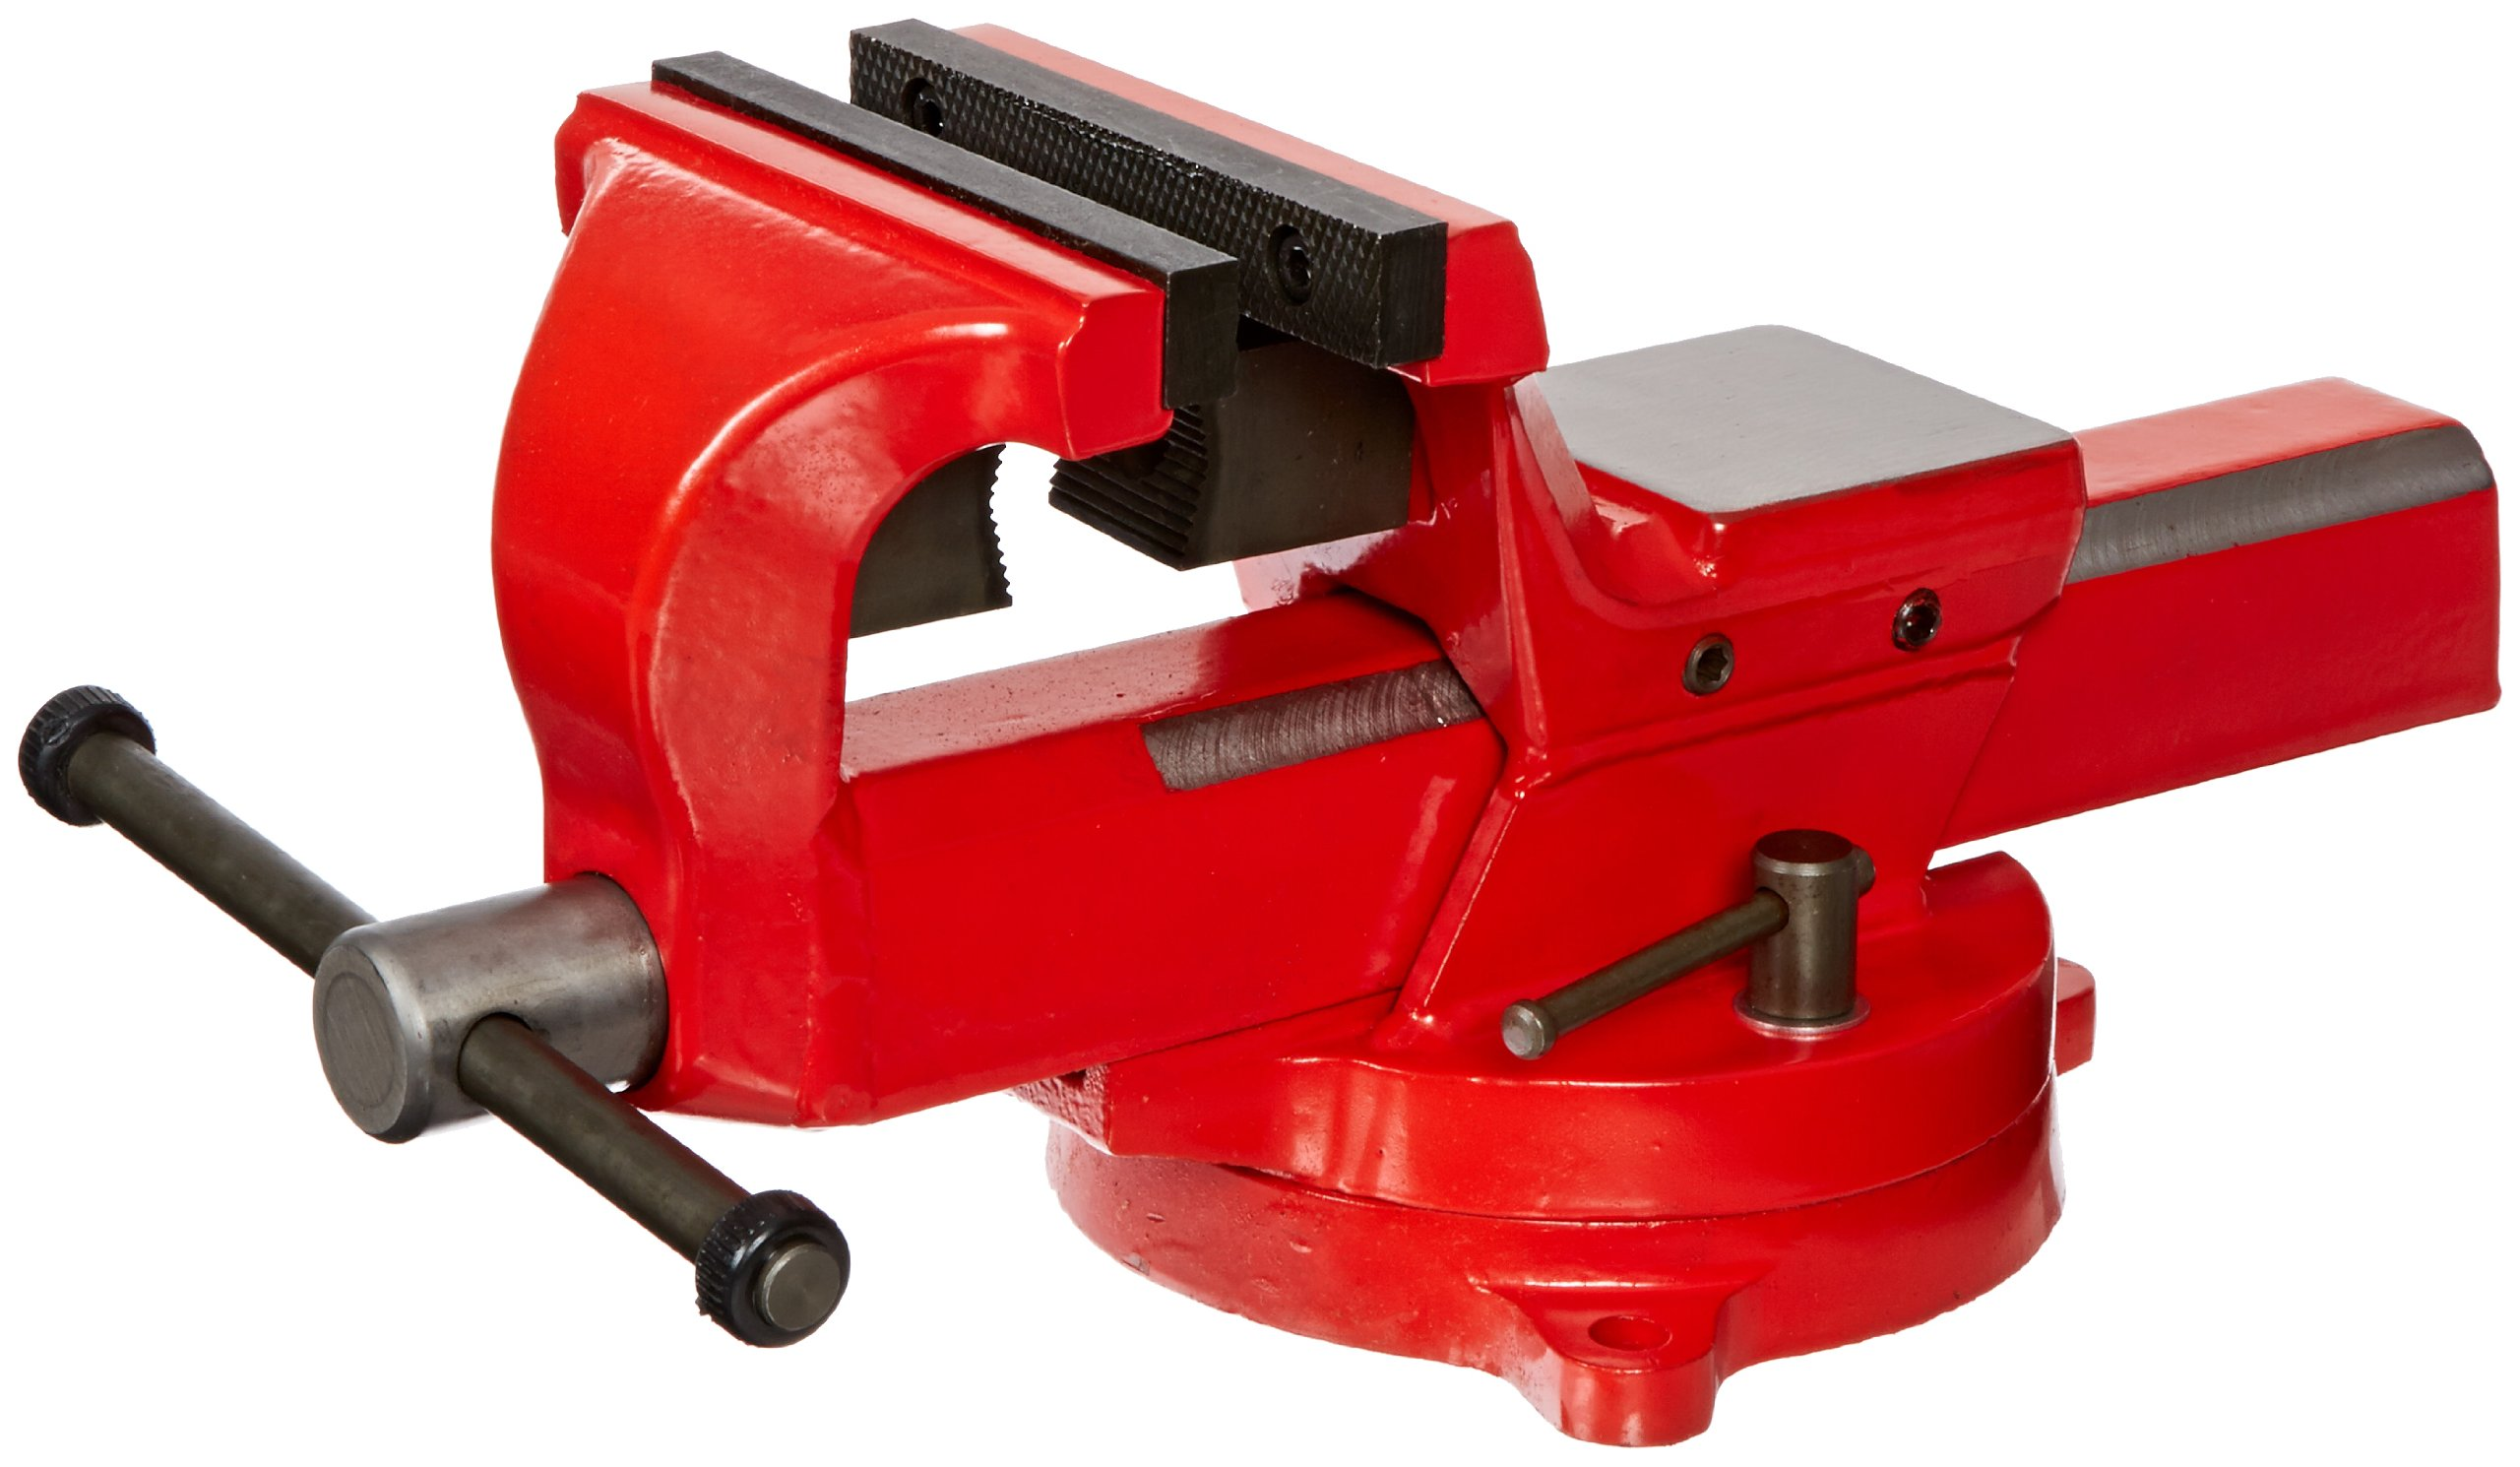 Yost Vises FSV-5 5'' Heavy-Duty Forged Steel Bench Vise with 360-Degree Swivel Base